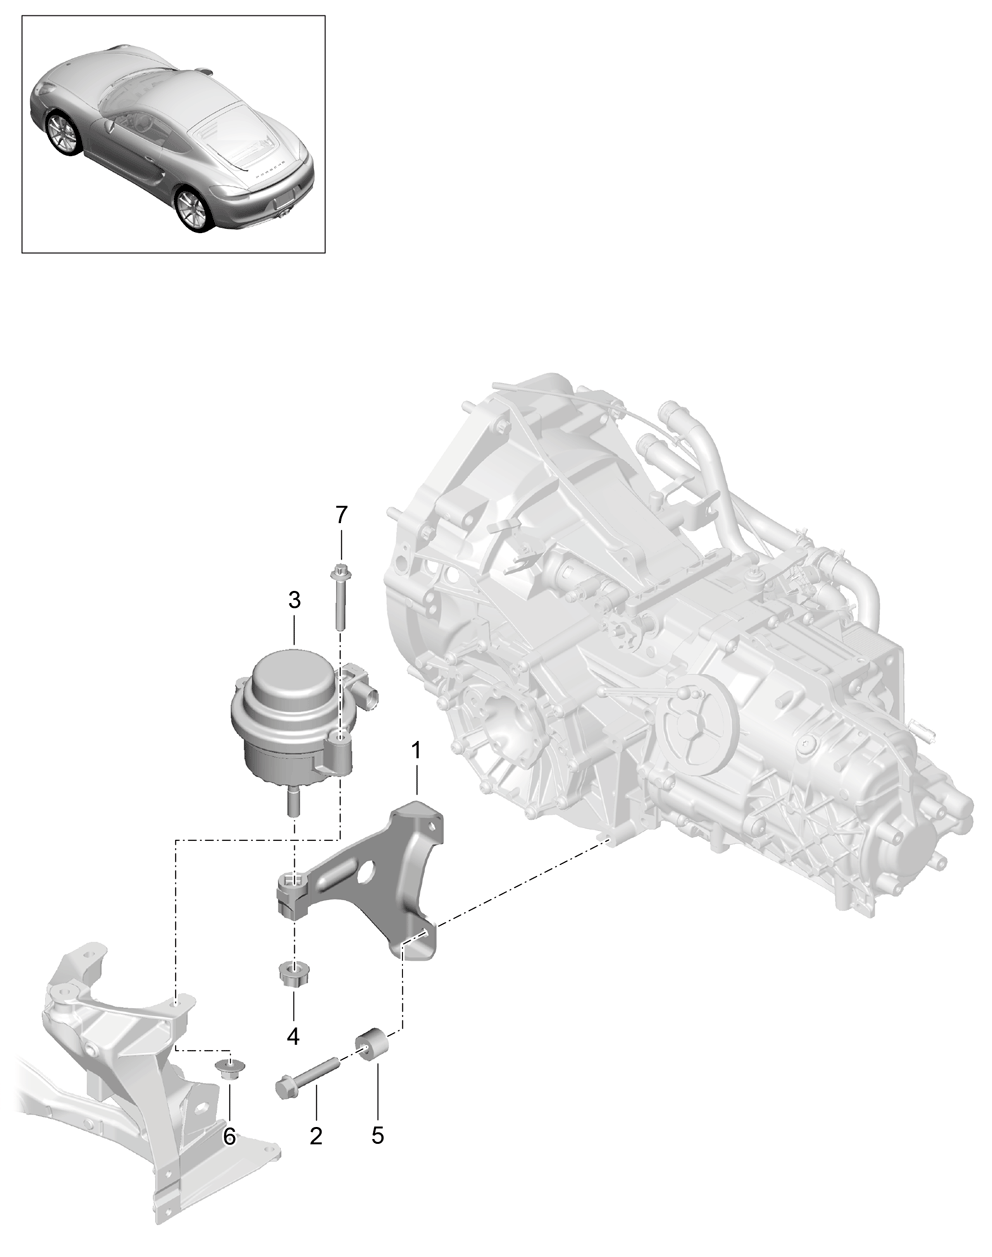 Porsche Cayman 2014 2016 Engine Threaded Joint Transmission Diagram Pet